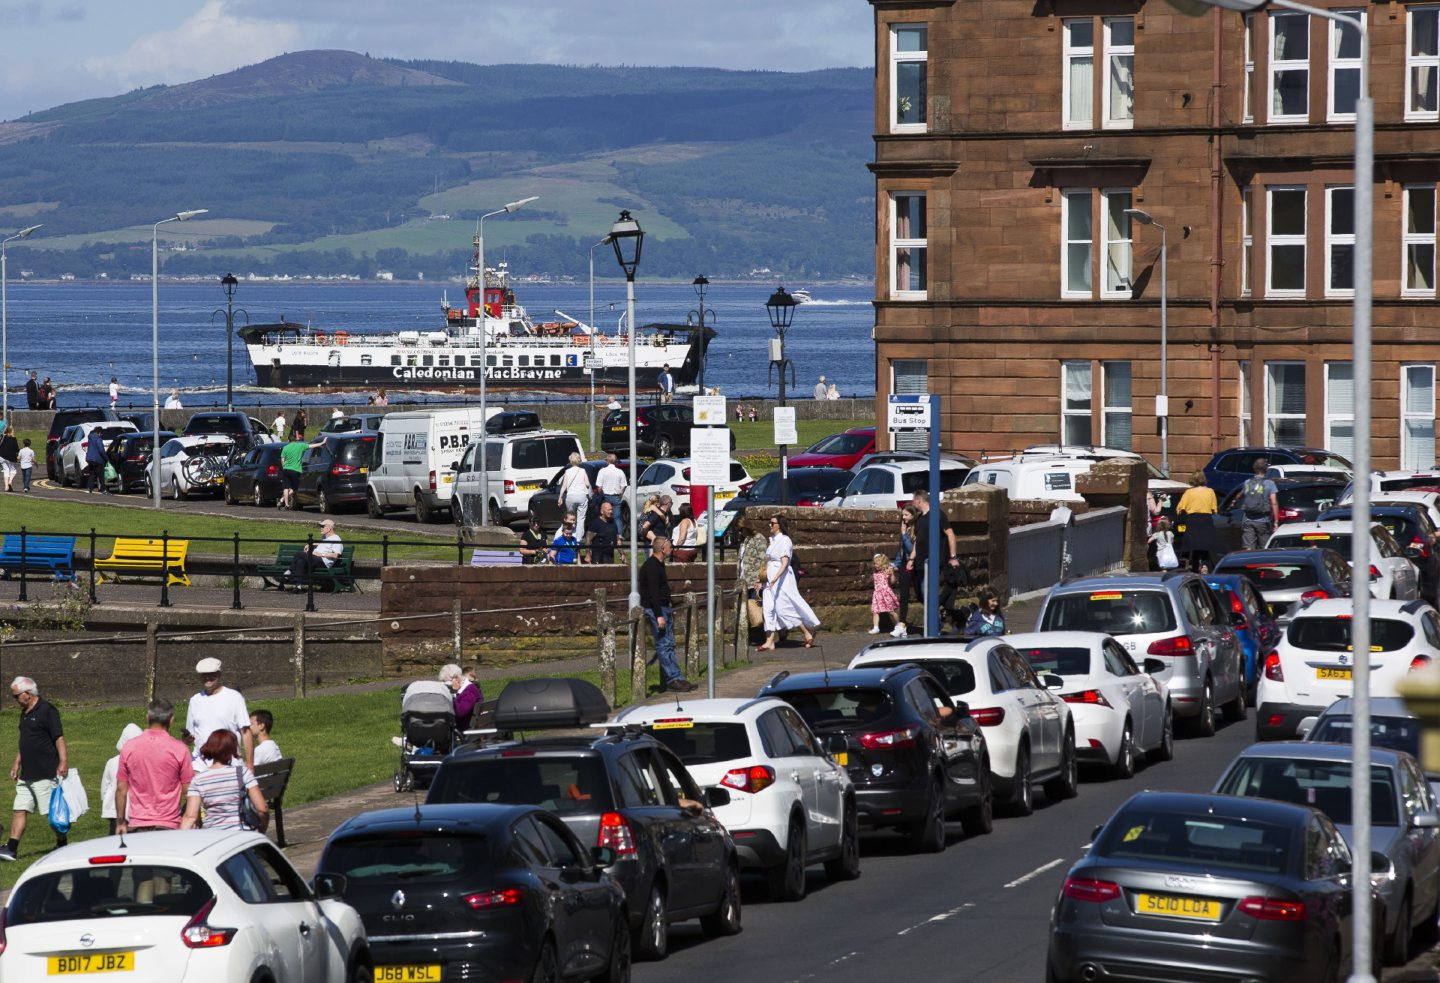 Day trippers queue in Largs for the Isle of Cumbrae, Millport ferry as temperatures rise on the weekend before the kids finally go back to school.